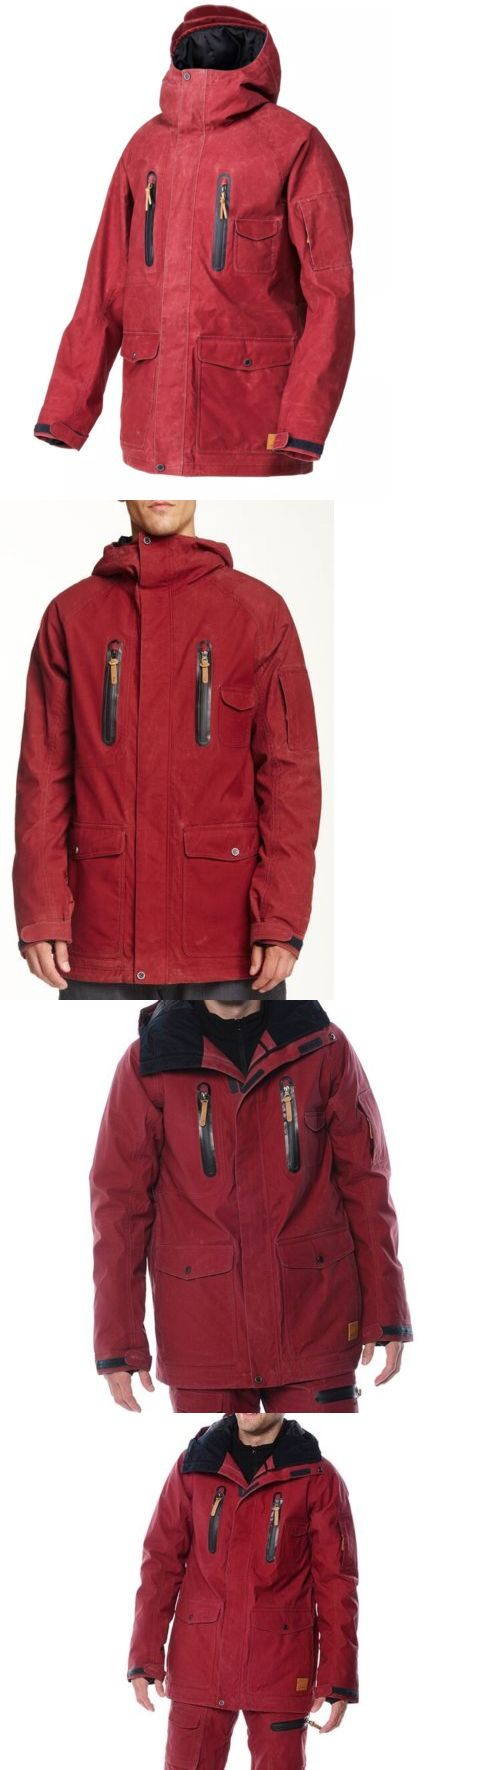 Coats and Jackets 26346: $249 Quiksilver Mens Snow Jacket 15K Waterproof Insulation Snowboard Size Xl -> BUY IT NOW ONLY: $99.99 on eBay!